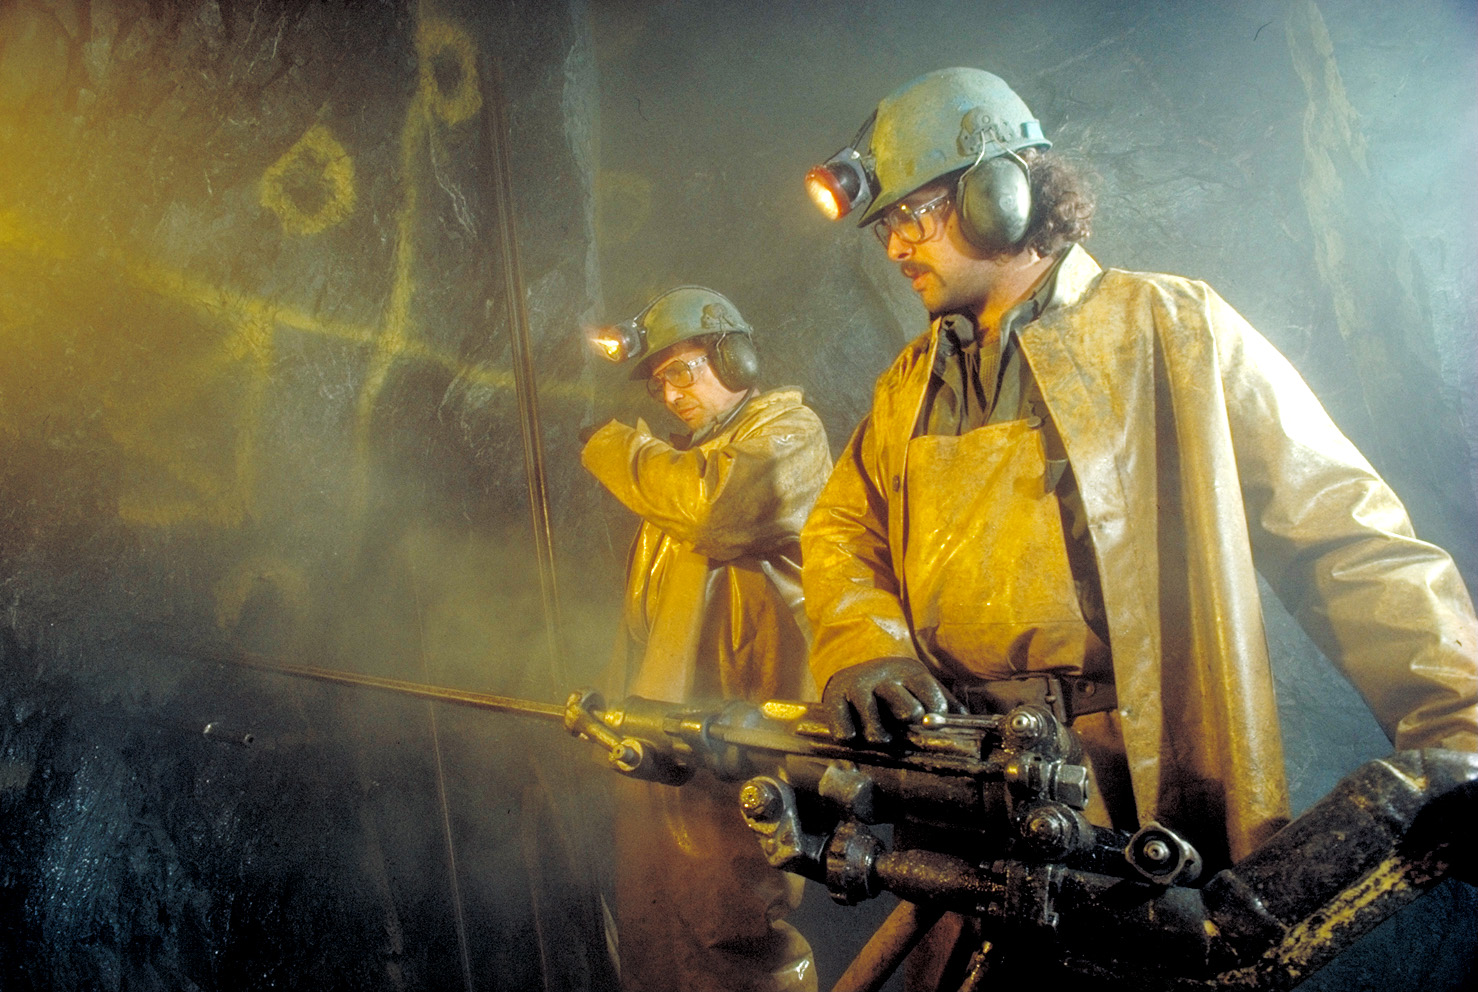 Miners at American Barrick Resources's Camflo gold mine in Quebec in 1984. Credit: Barrick Gold.